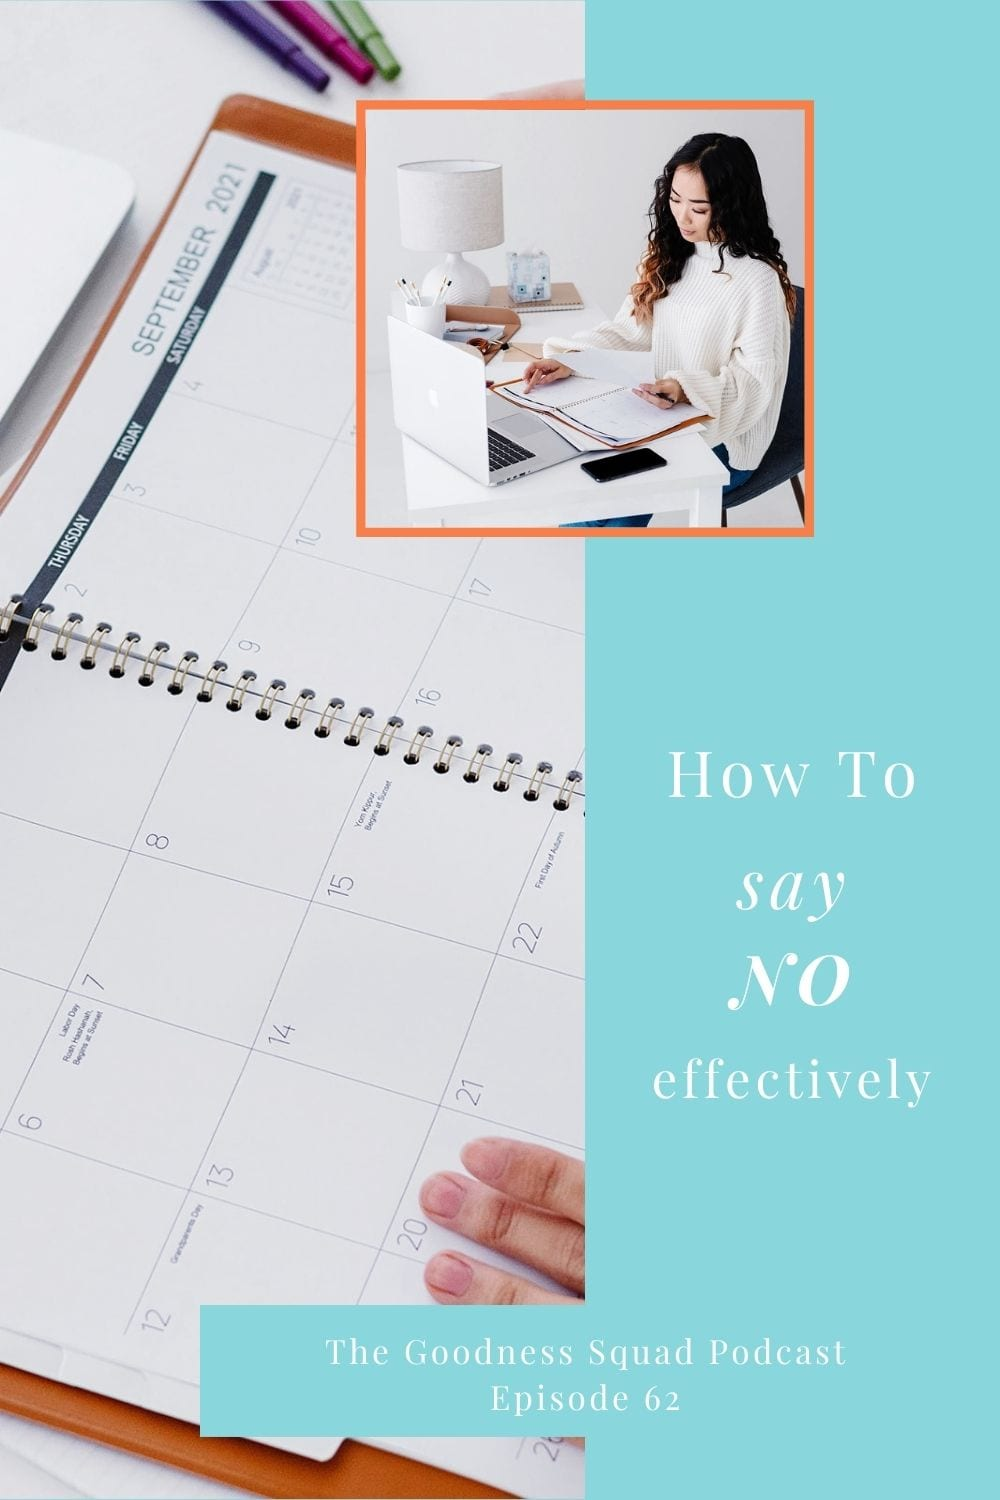 062_how to say no effectively without feeling guilty or rude